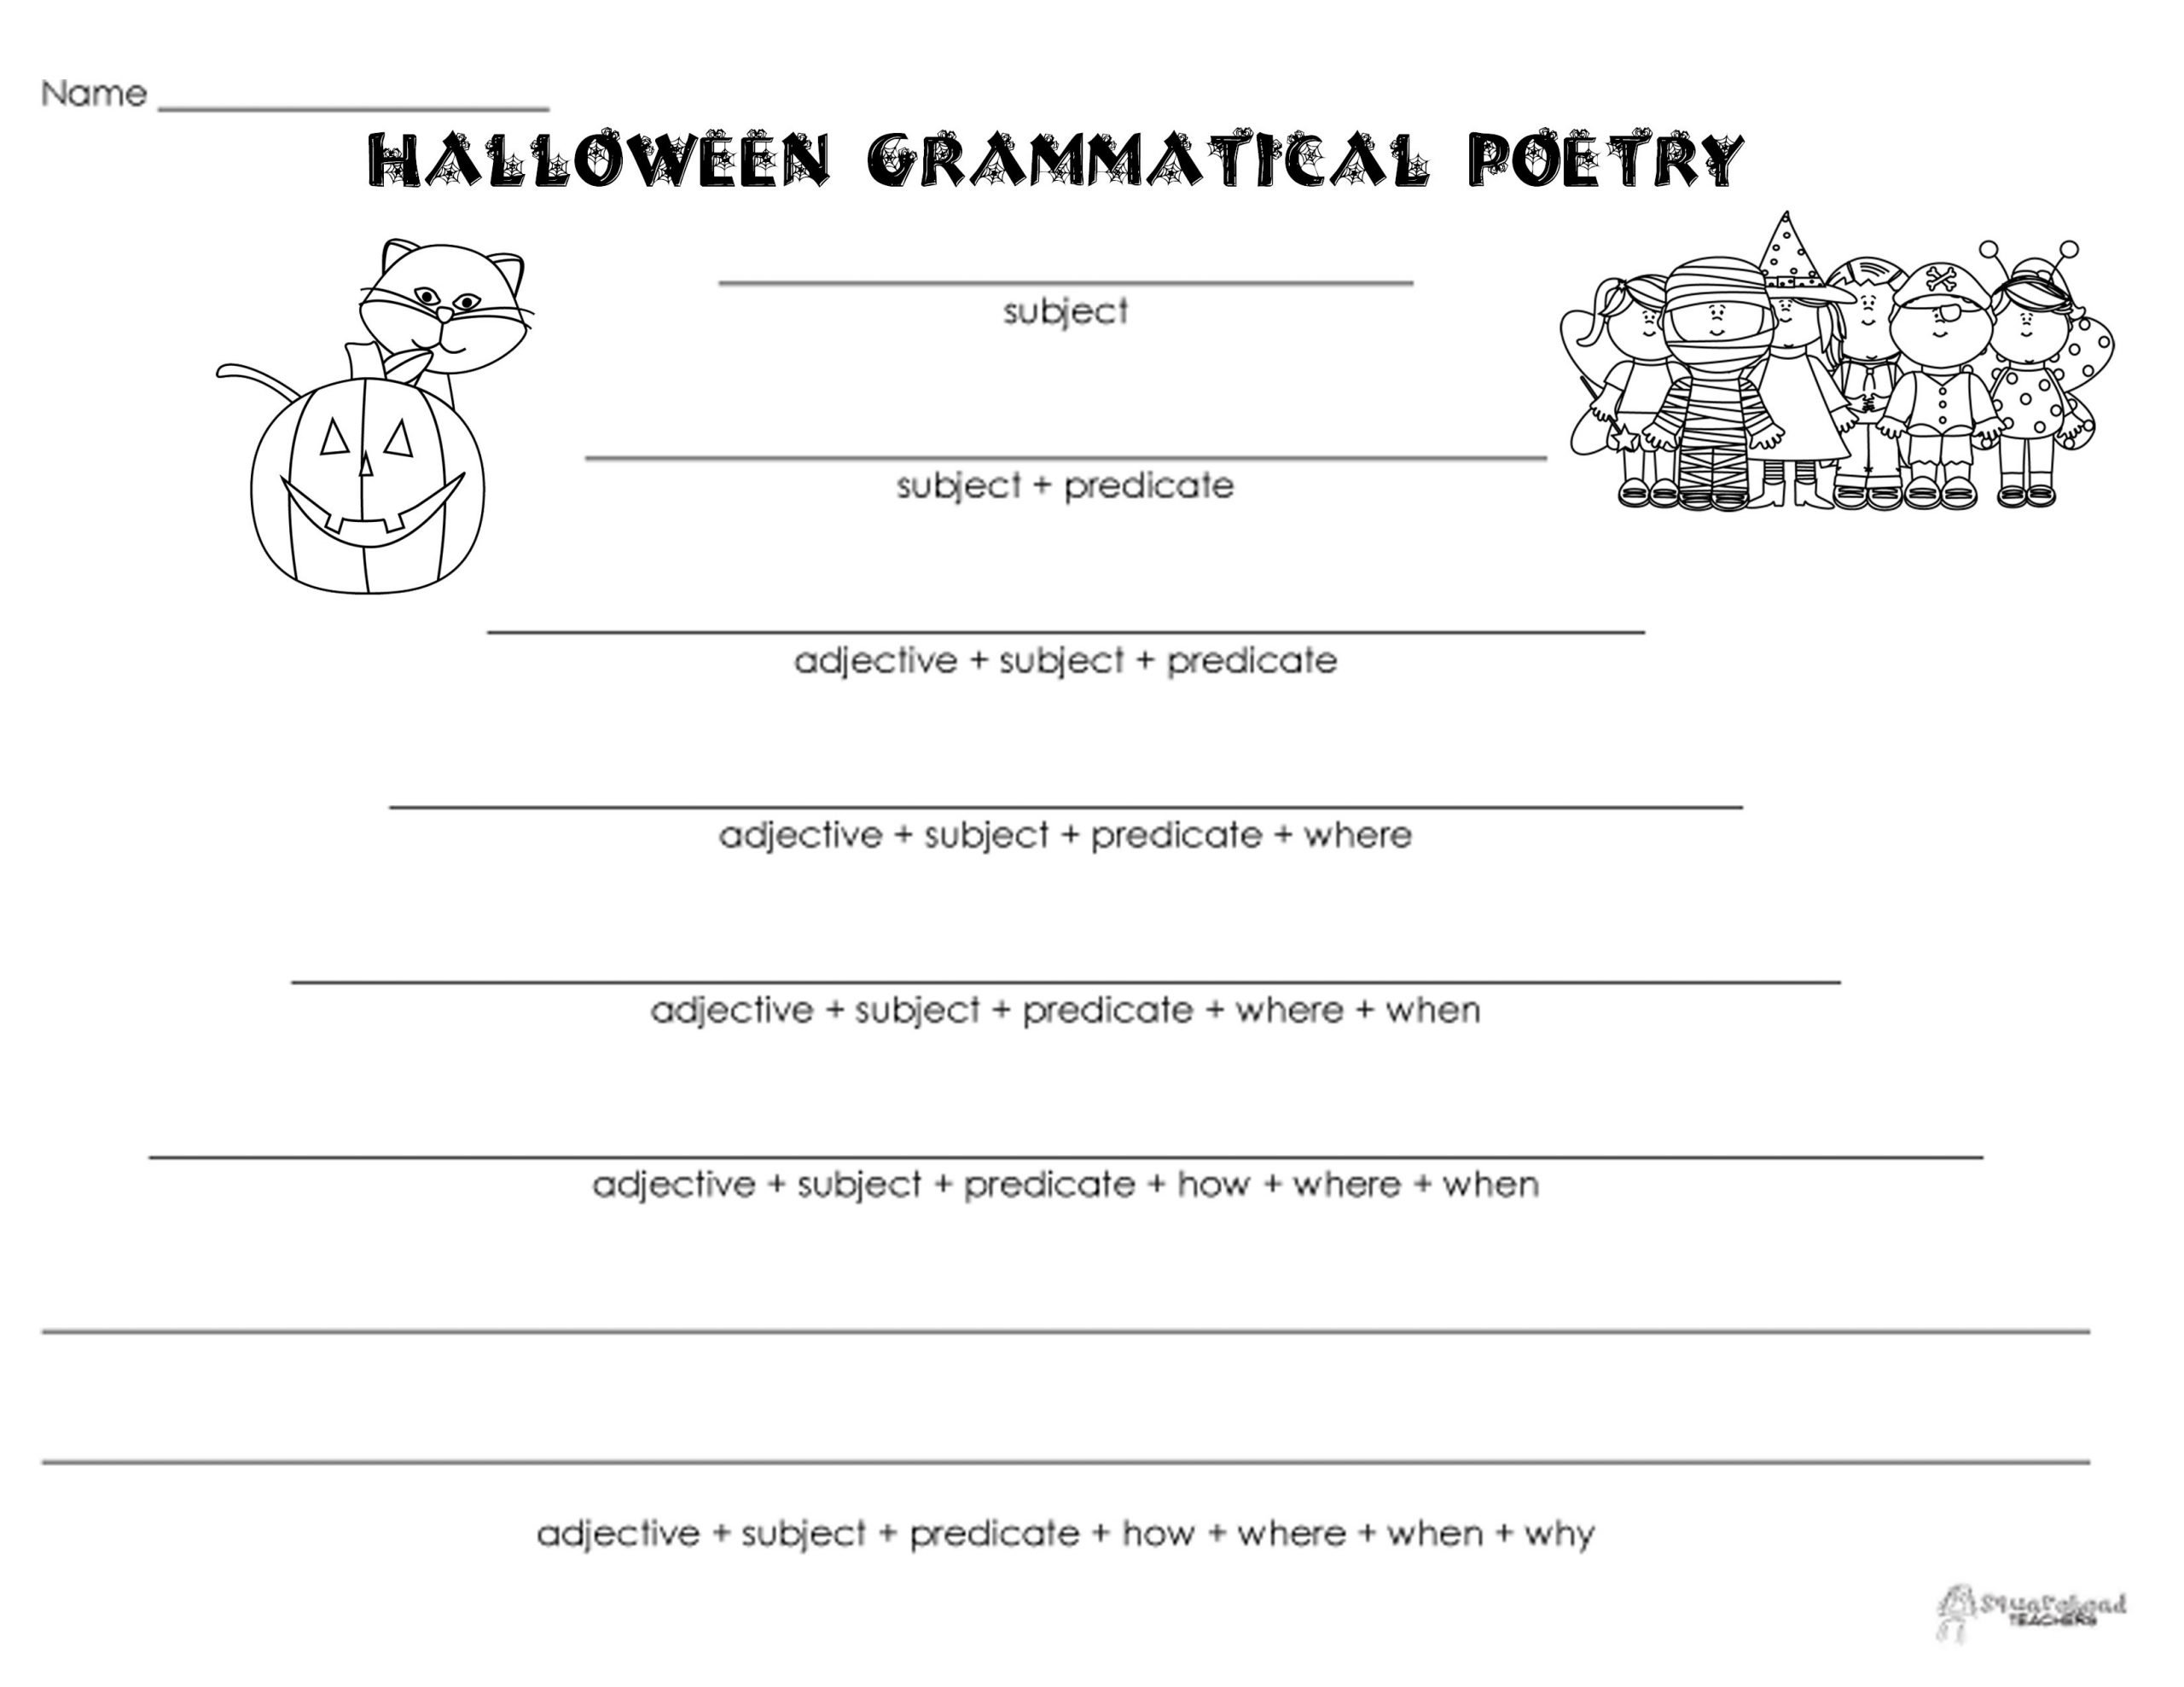 s=grammatical poetry&submit=Search